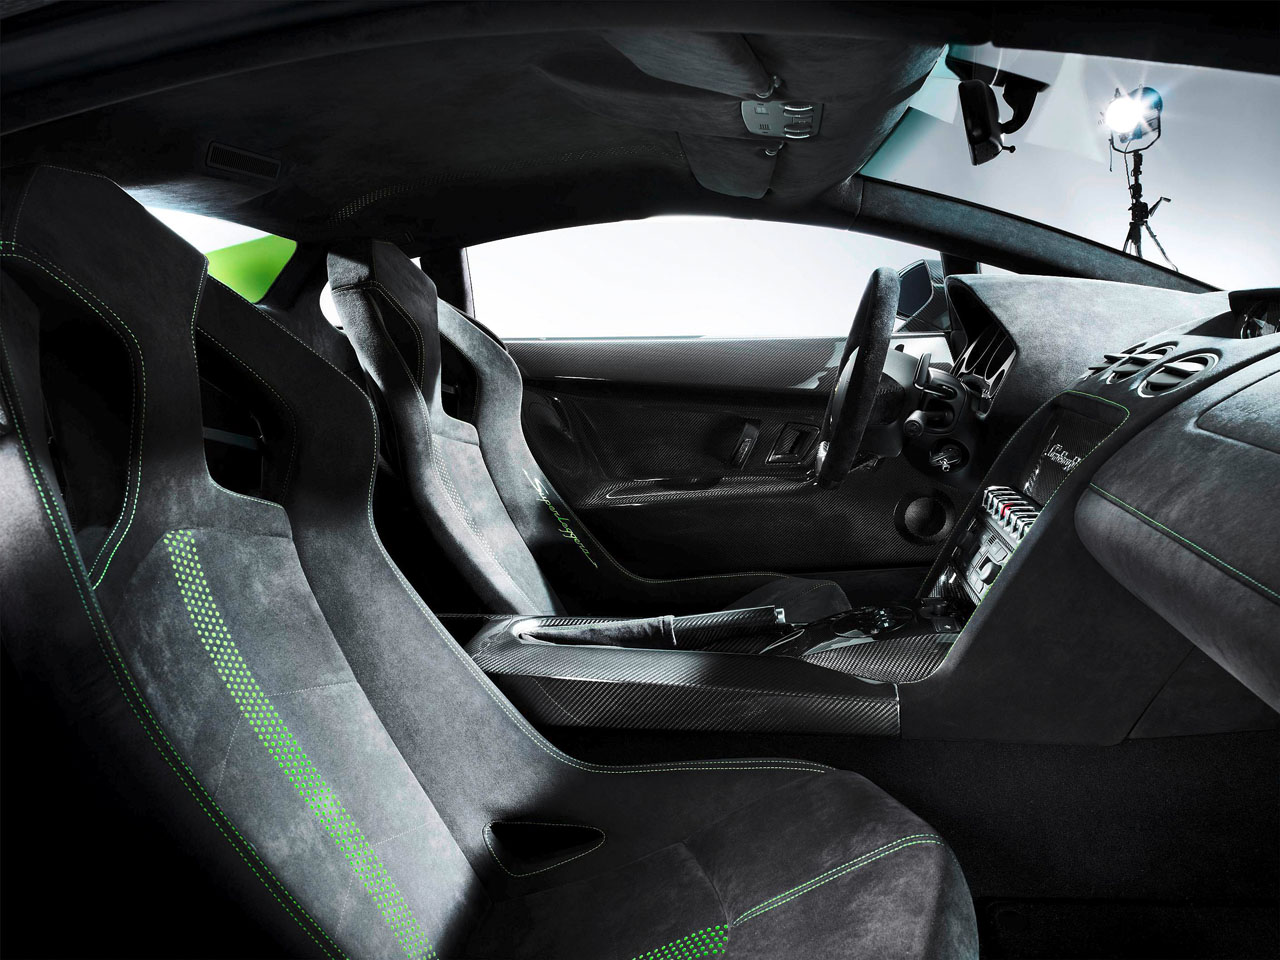 lamborghini gallardo interior manual. interior shot of a lamborghinigallardolp5704superleggera showing the alcantara lamborghini gallardo manual